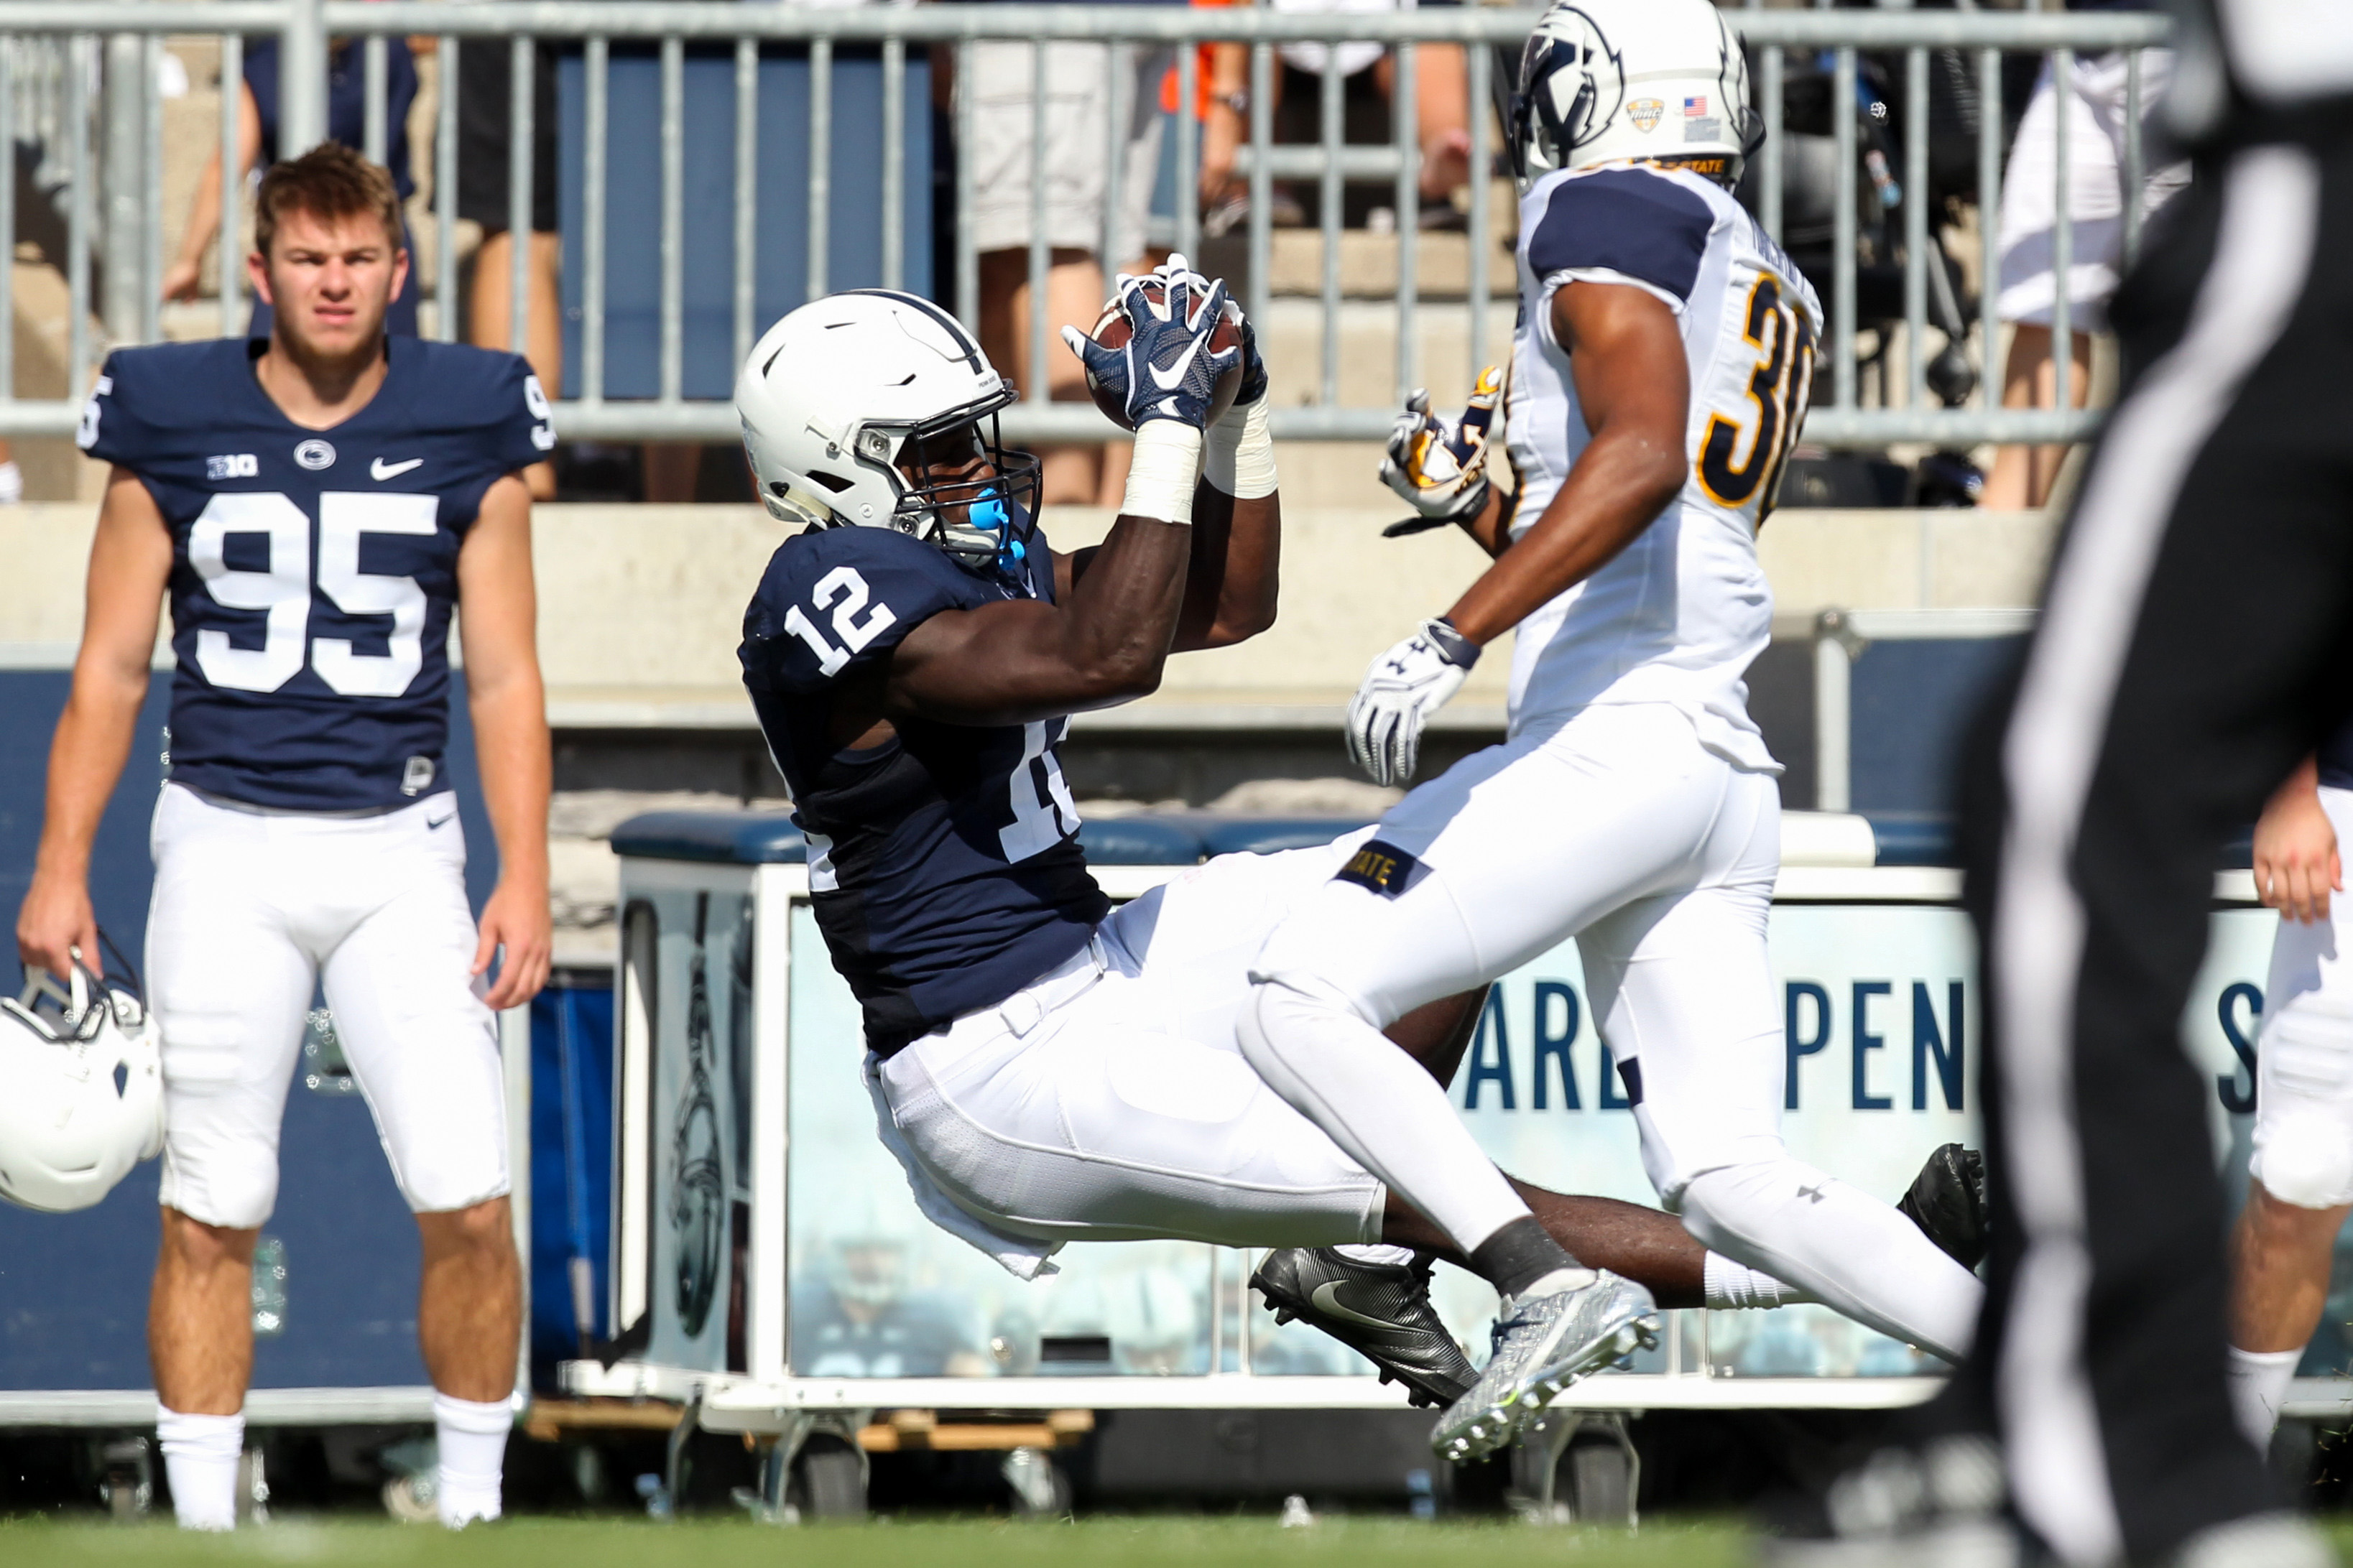 9516778-ncaa-football-kent-state-at-penn-state